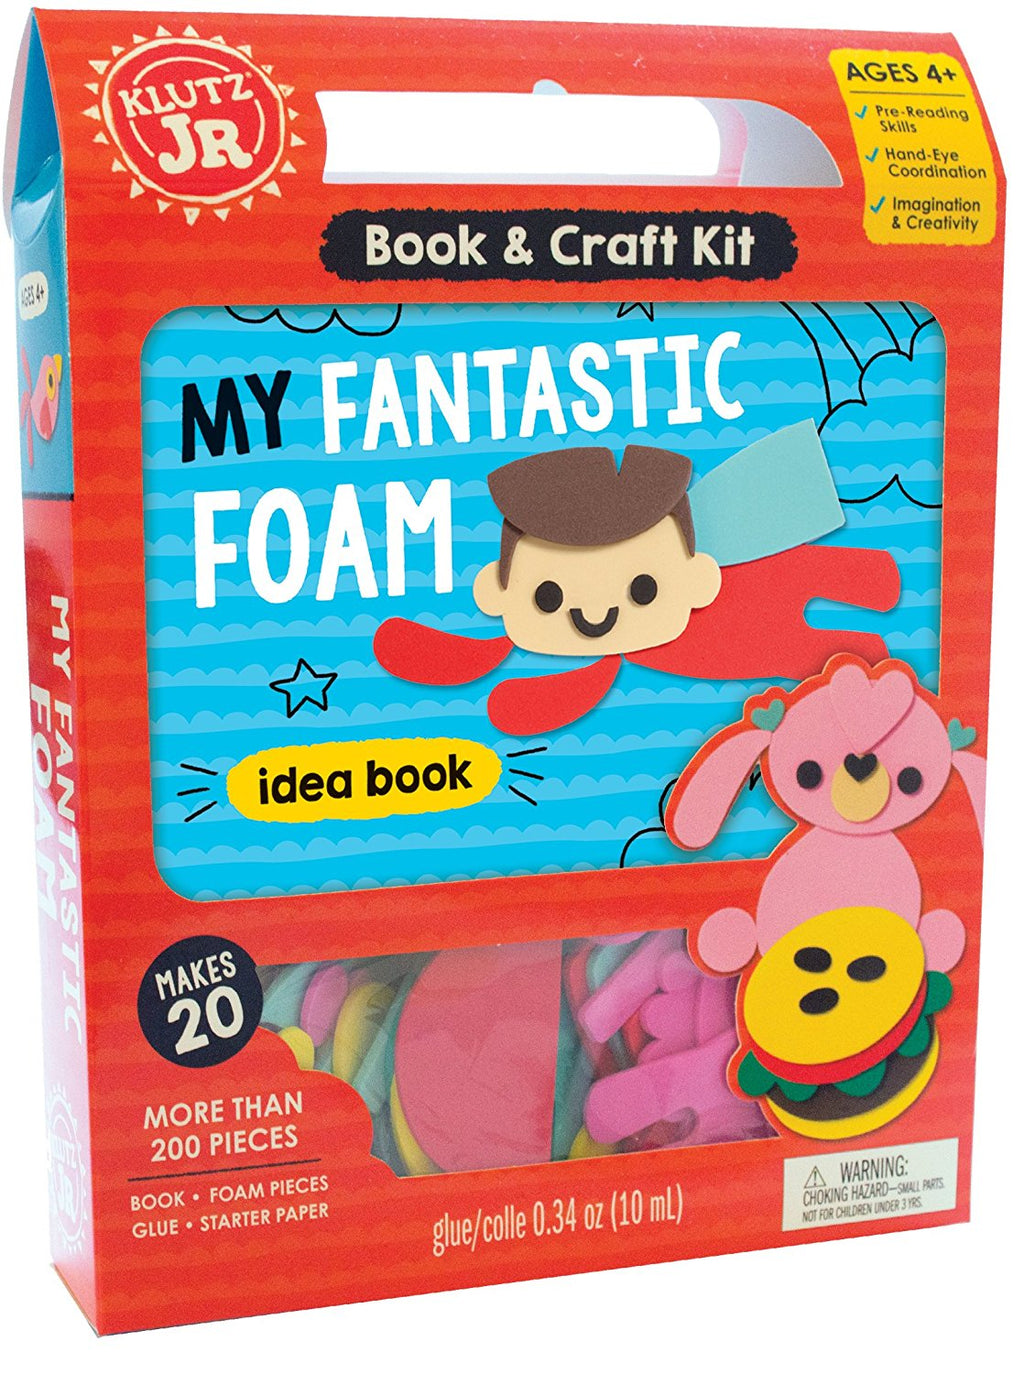 KLUTZ MY FANTASTIC FOAM BOOK & CRAFT KIT Castle toys